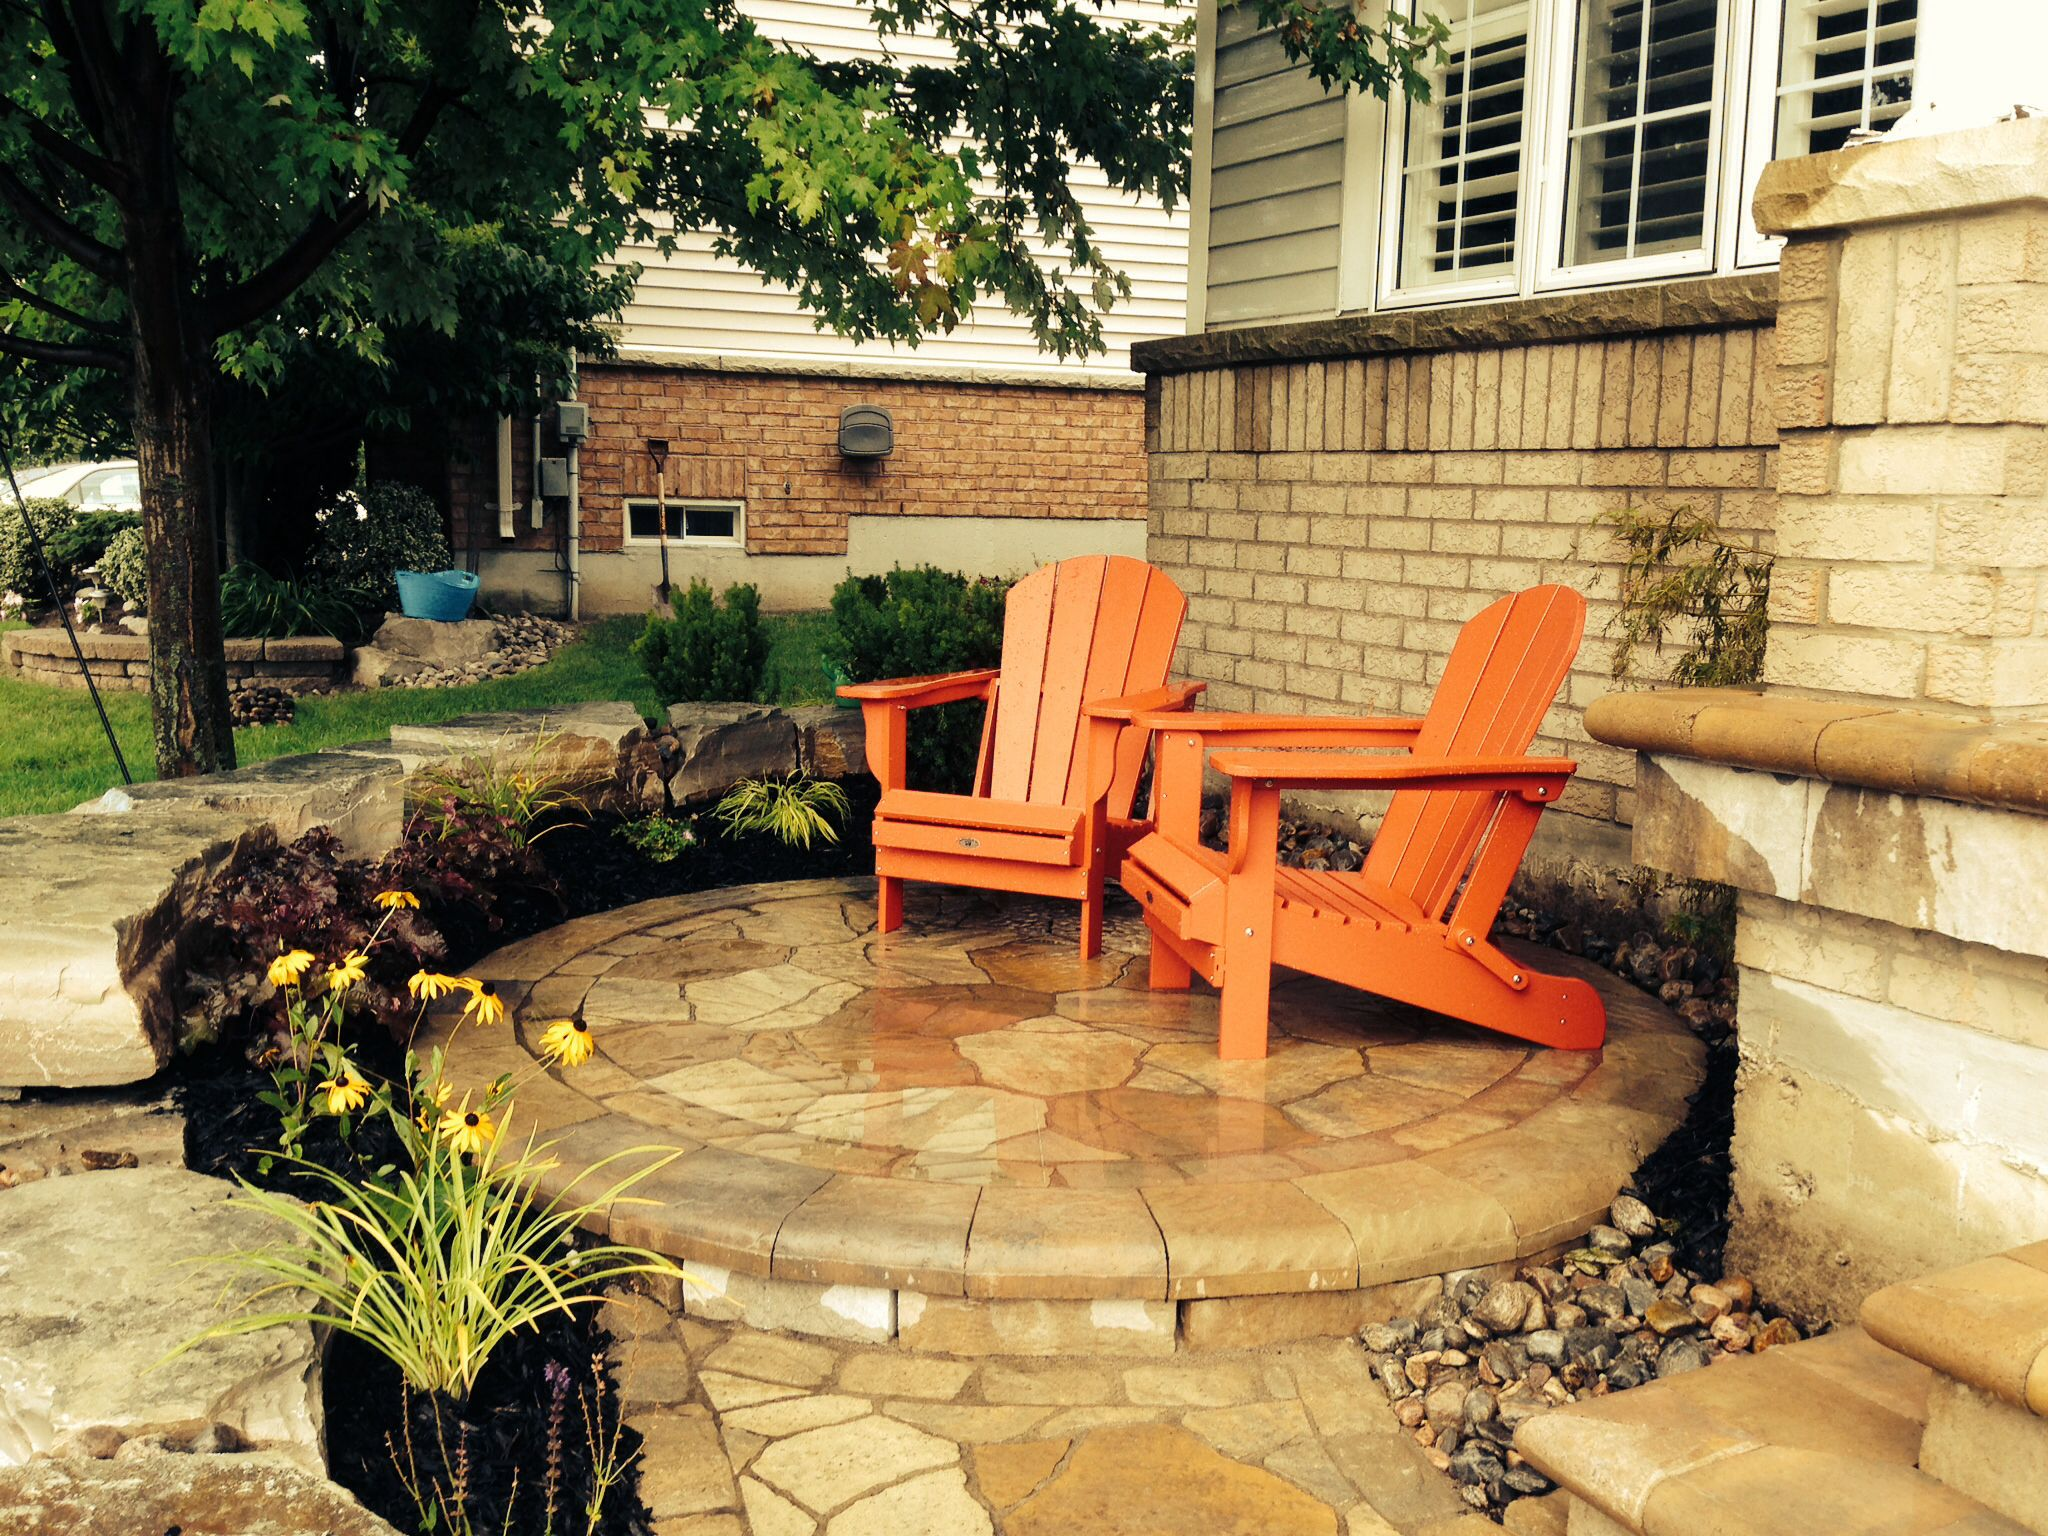 Front yard sitting area | Front yard Landscaping | Pinterest | Front yards Sitting area and Yards